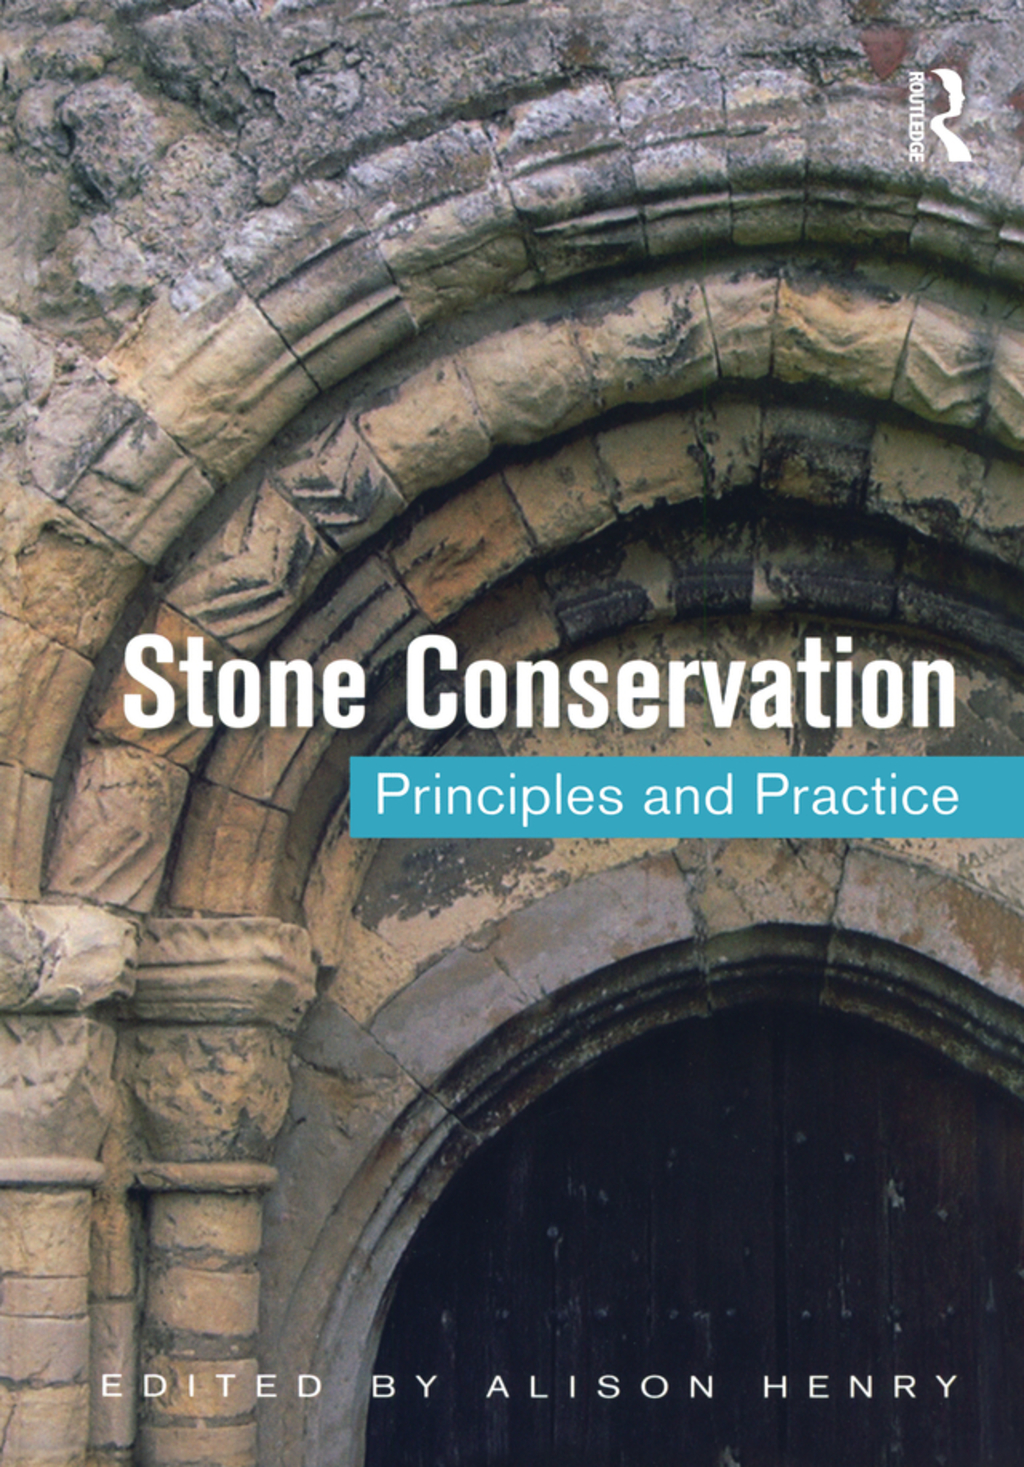 Stone Conservation: Principles and Practice (ebook) eBooks